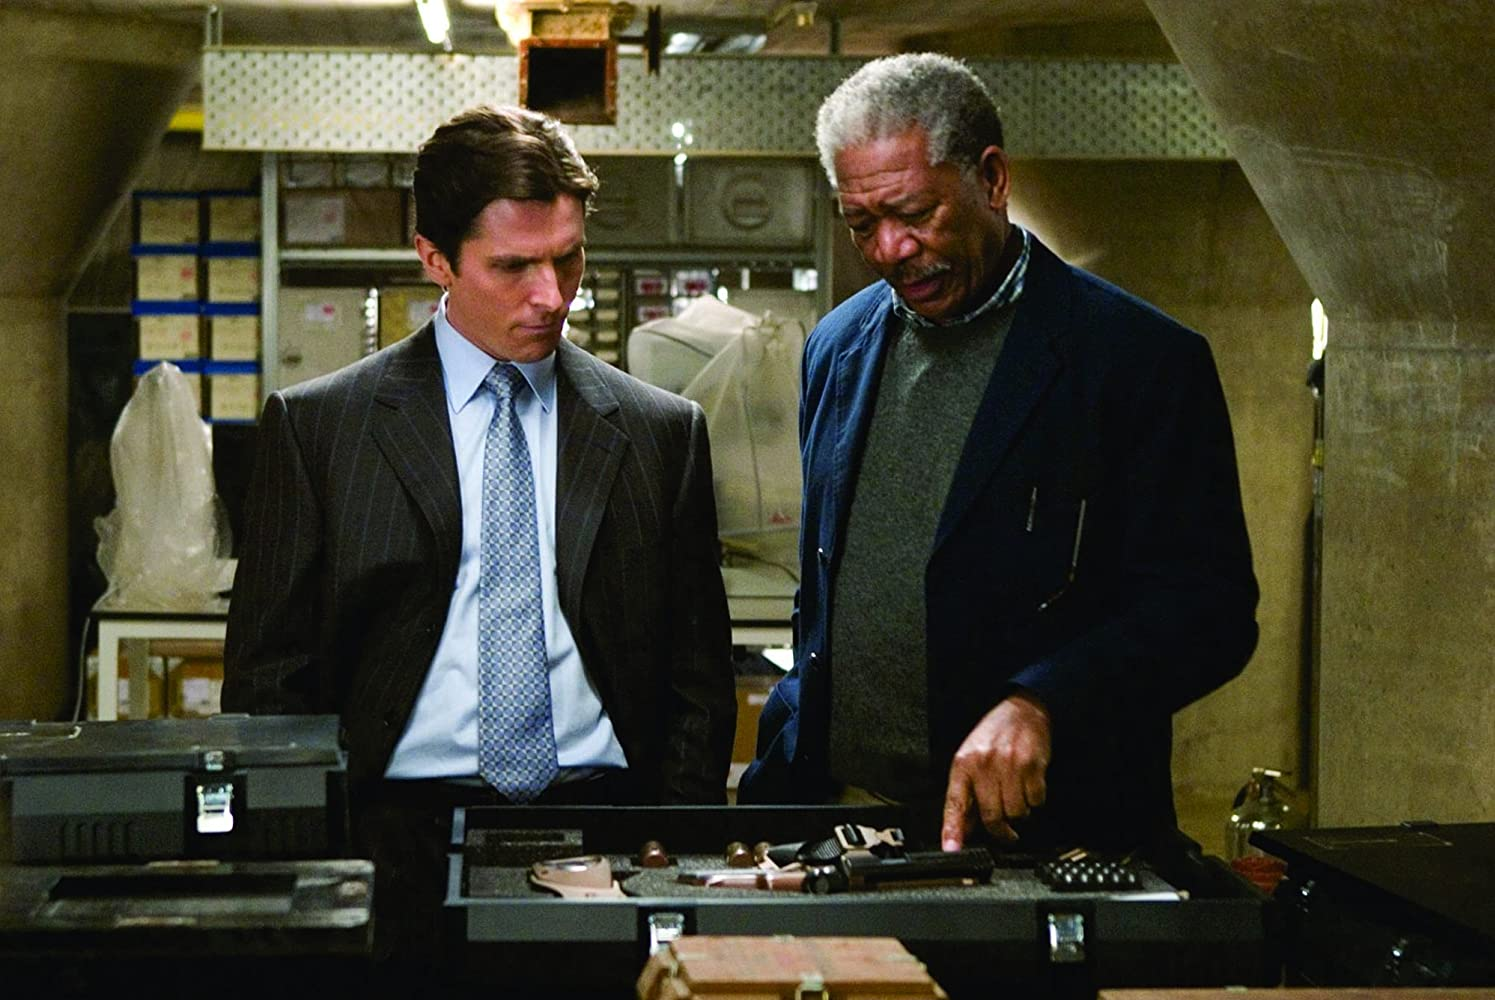 Morgan Freeman and Christian Bale in Batman Begins (2005)